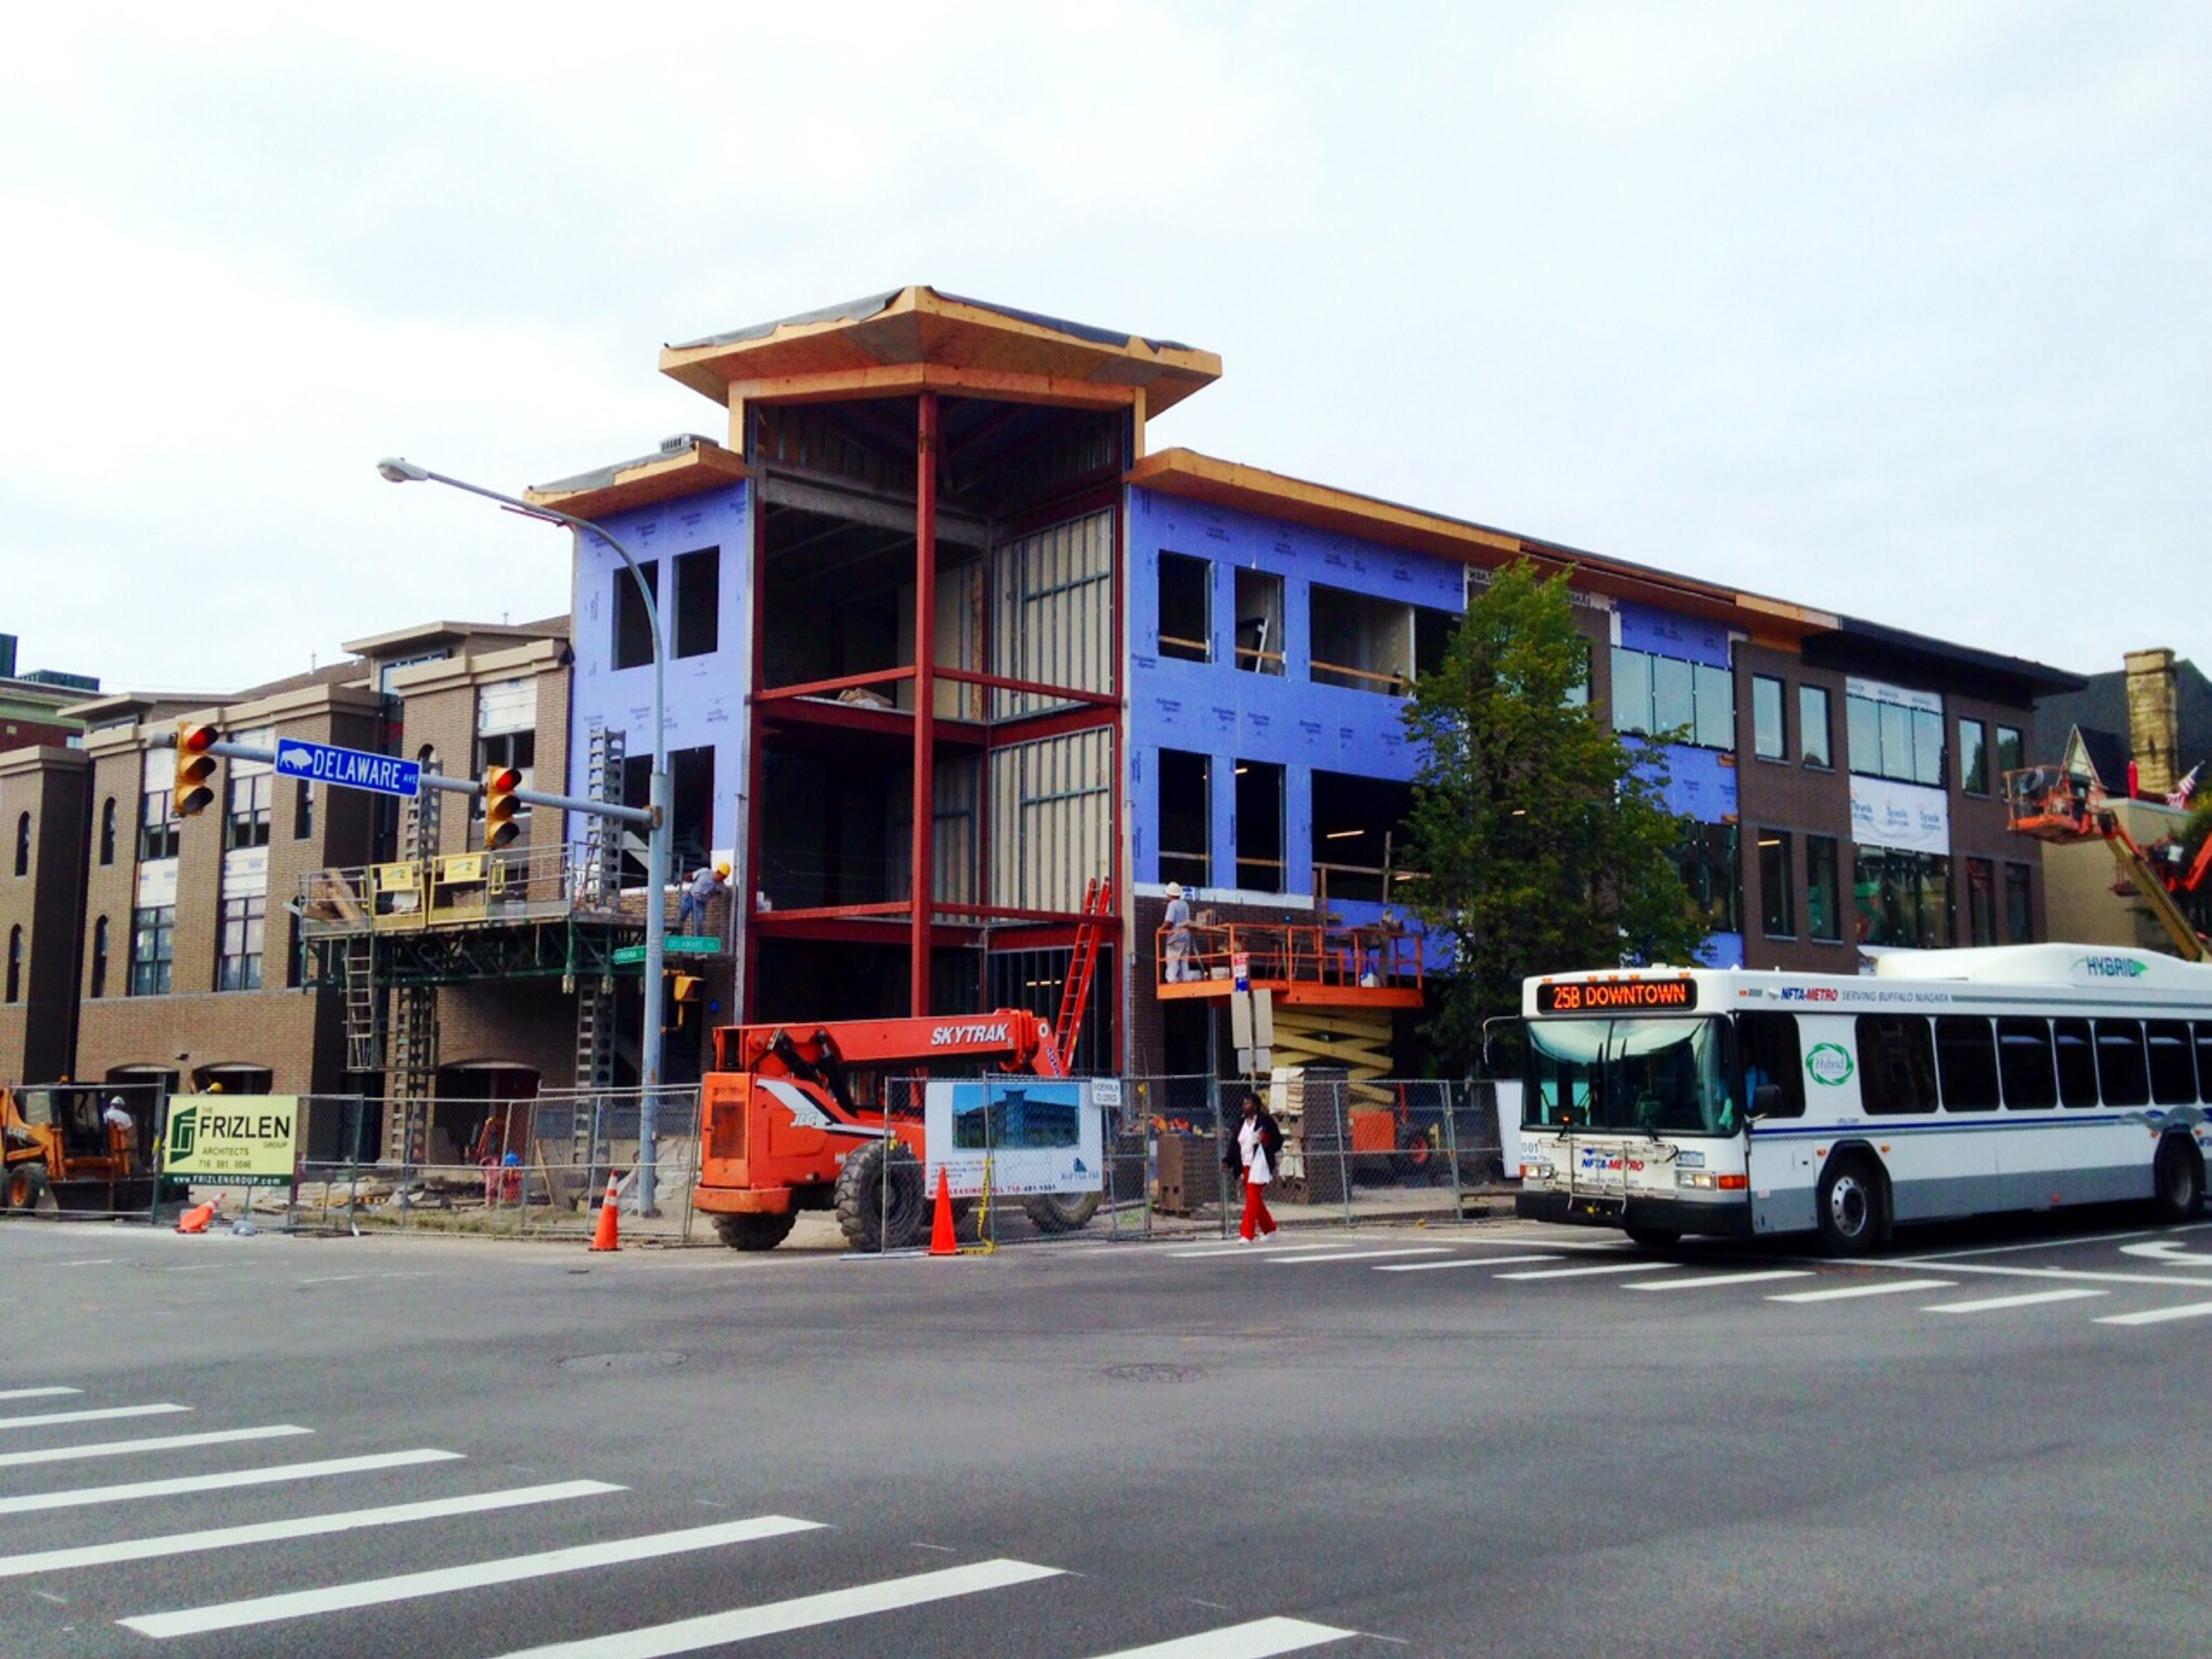 Mid-October is expected to see completion of Twain Tower, which sits on the site of the former Cloister Restaurant and onetime home of Mark Twain at 468 Delaware Ave.